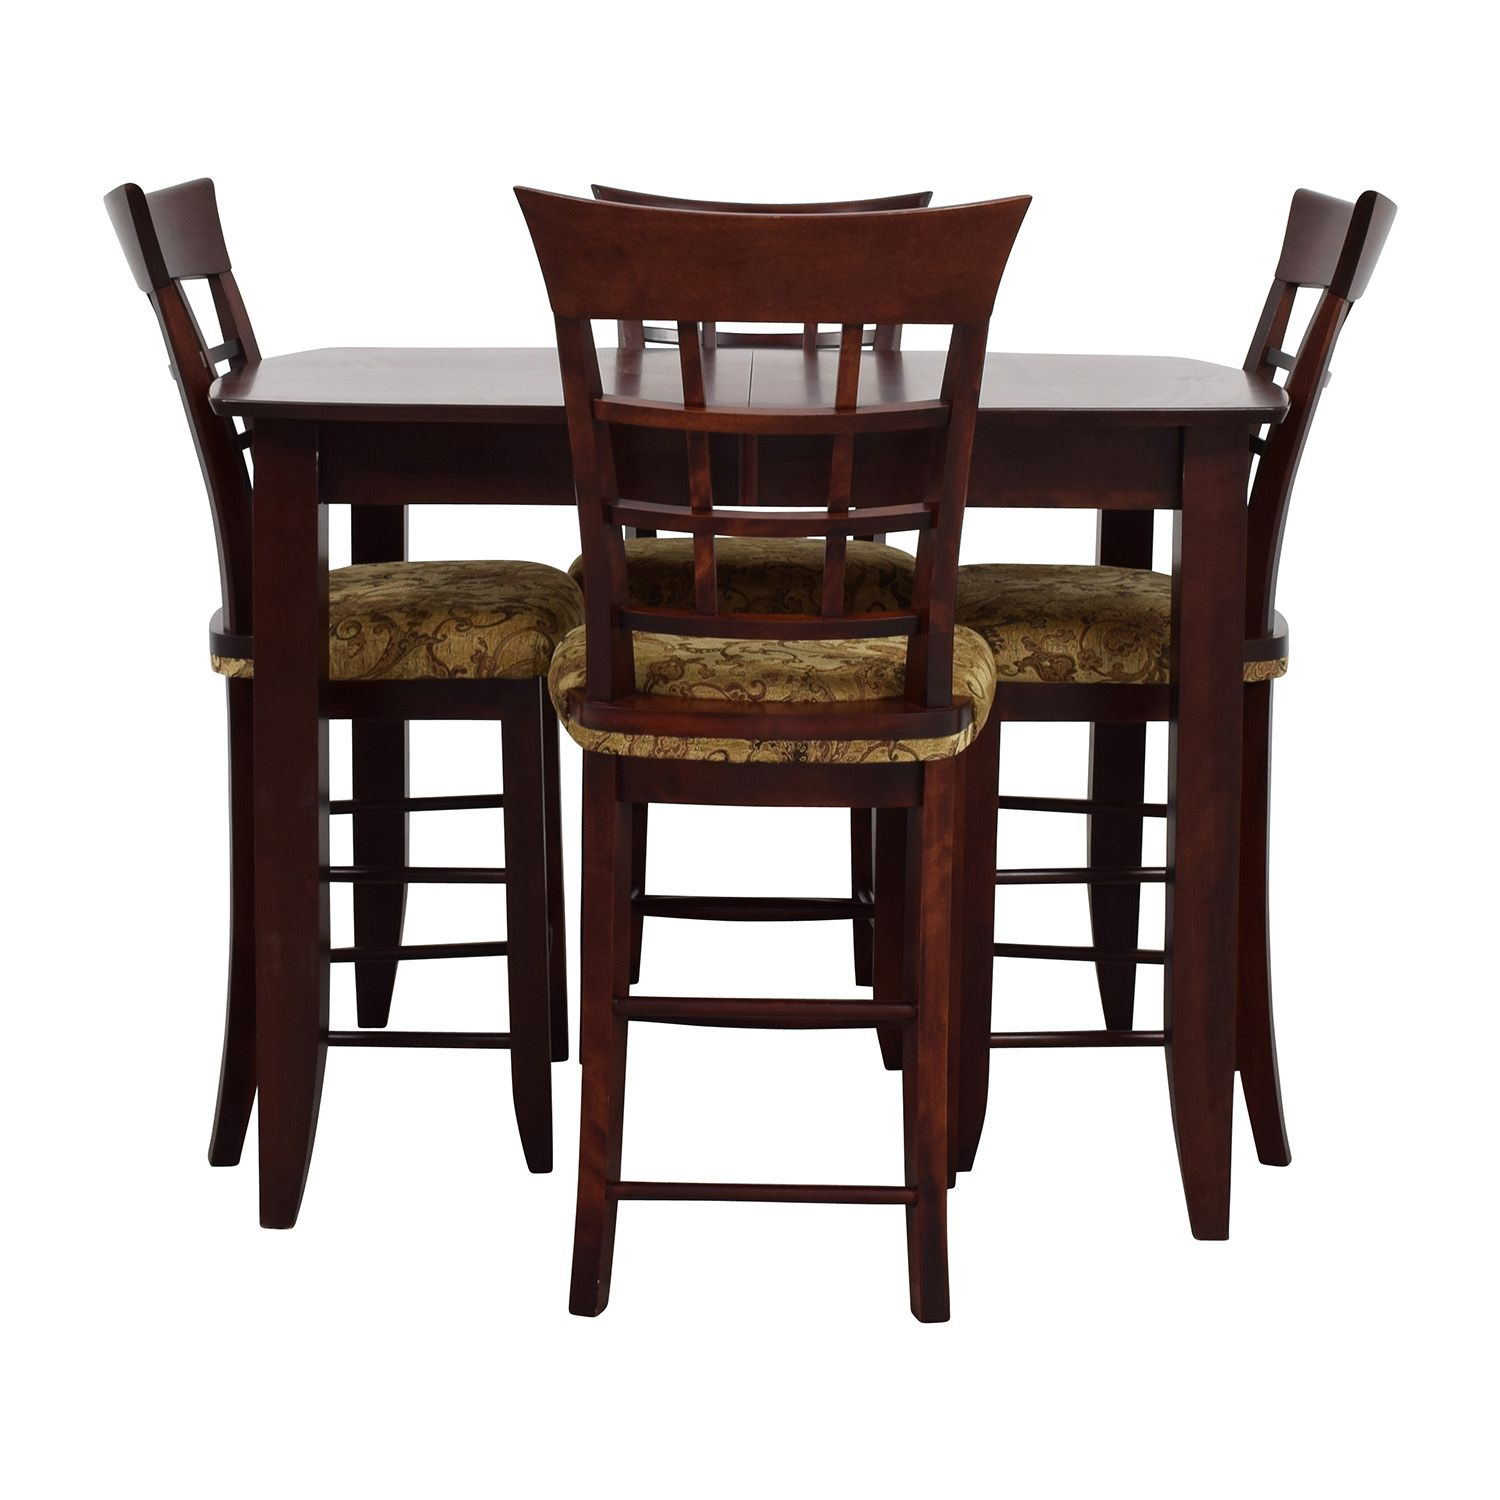 High Top Dining Table With Four Chairs Discount Mzfiqer High